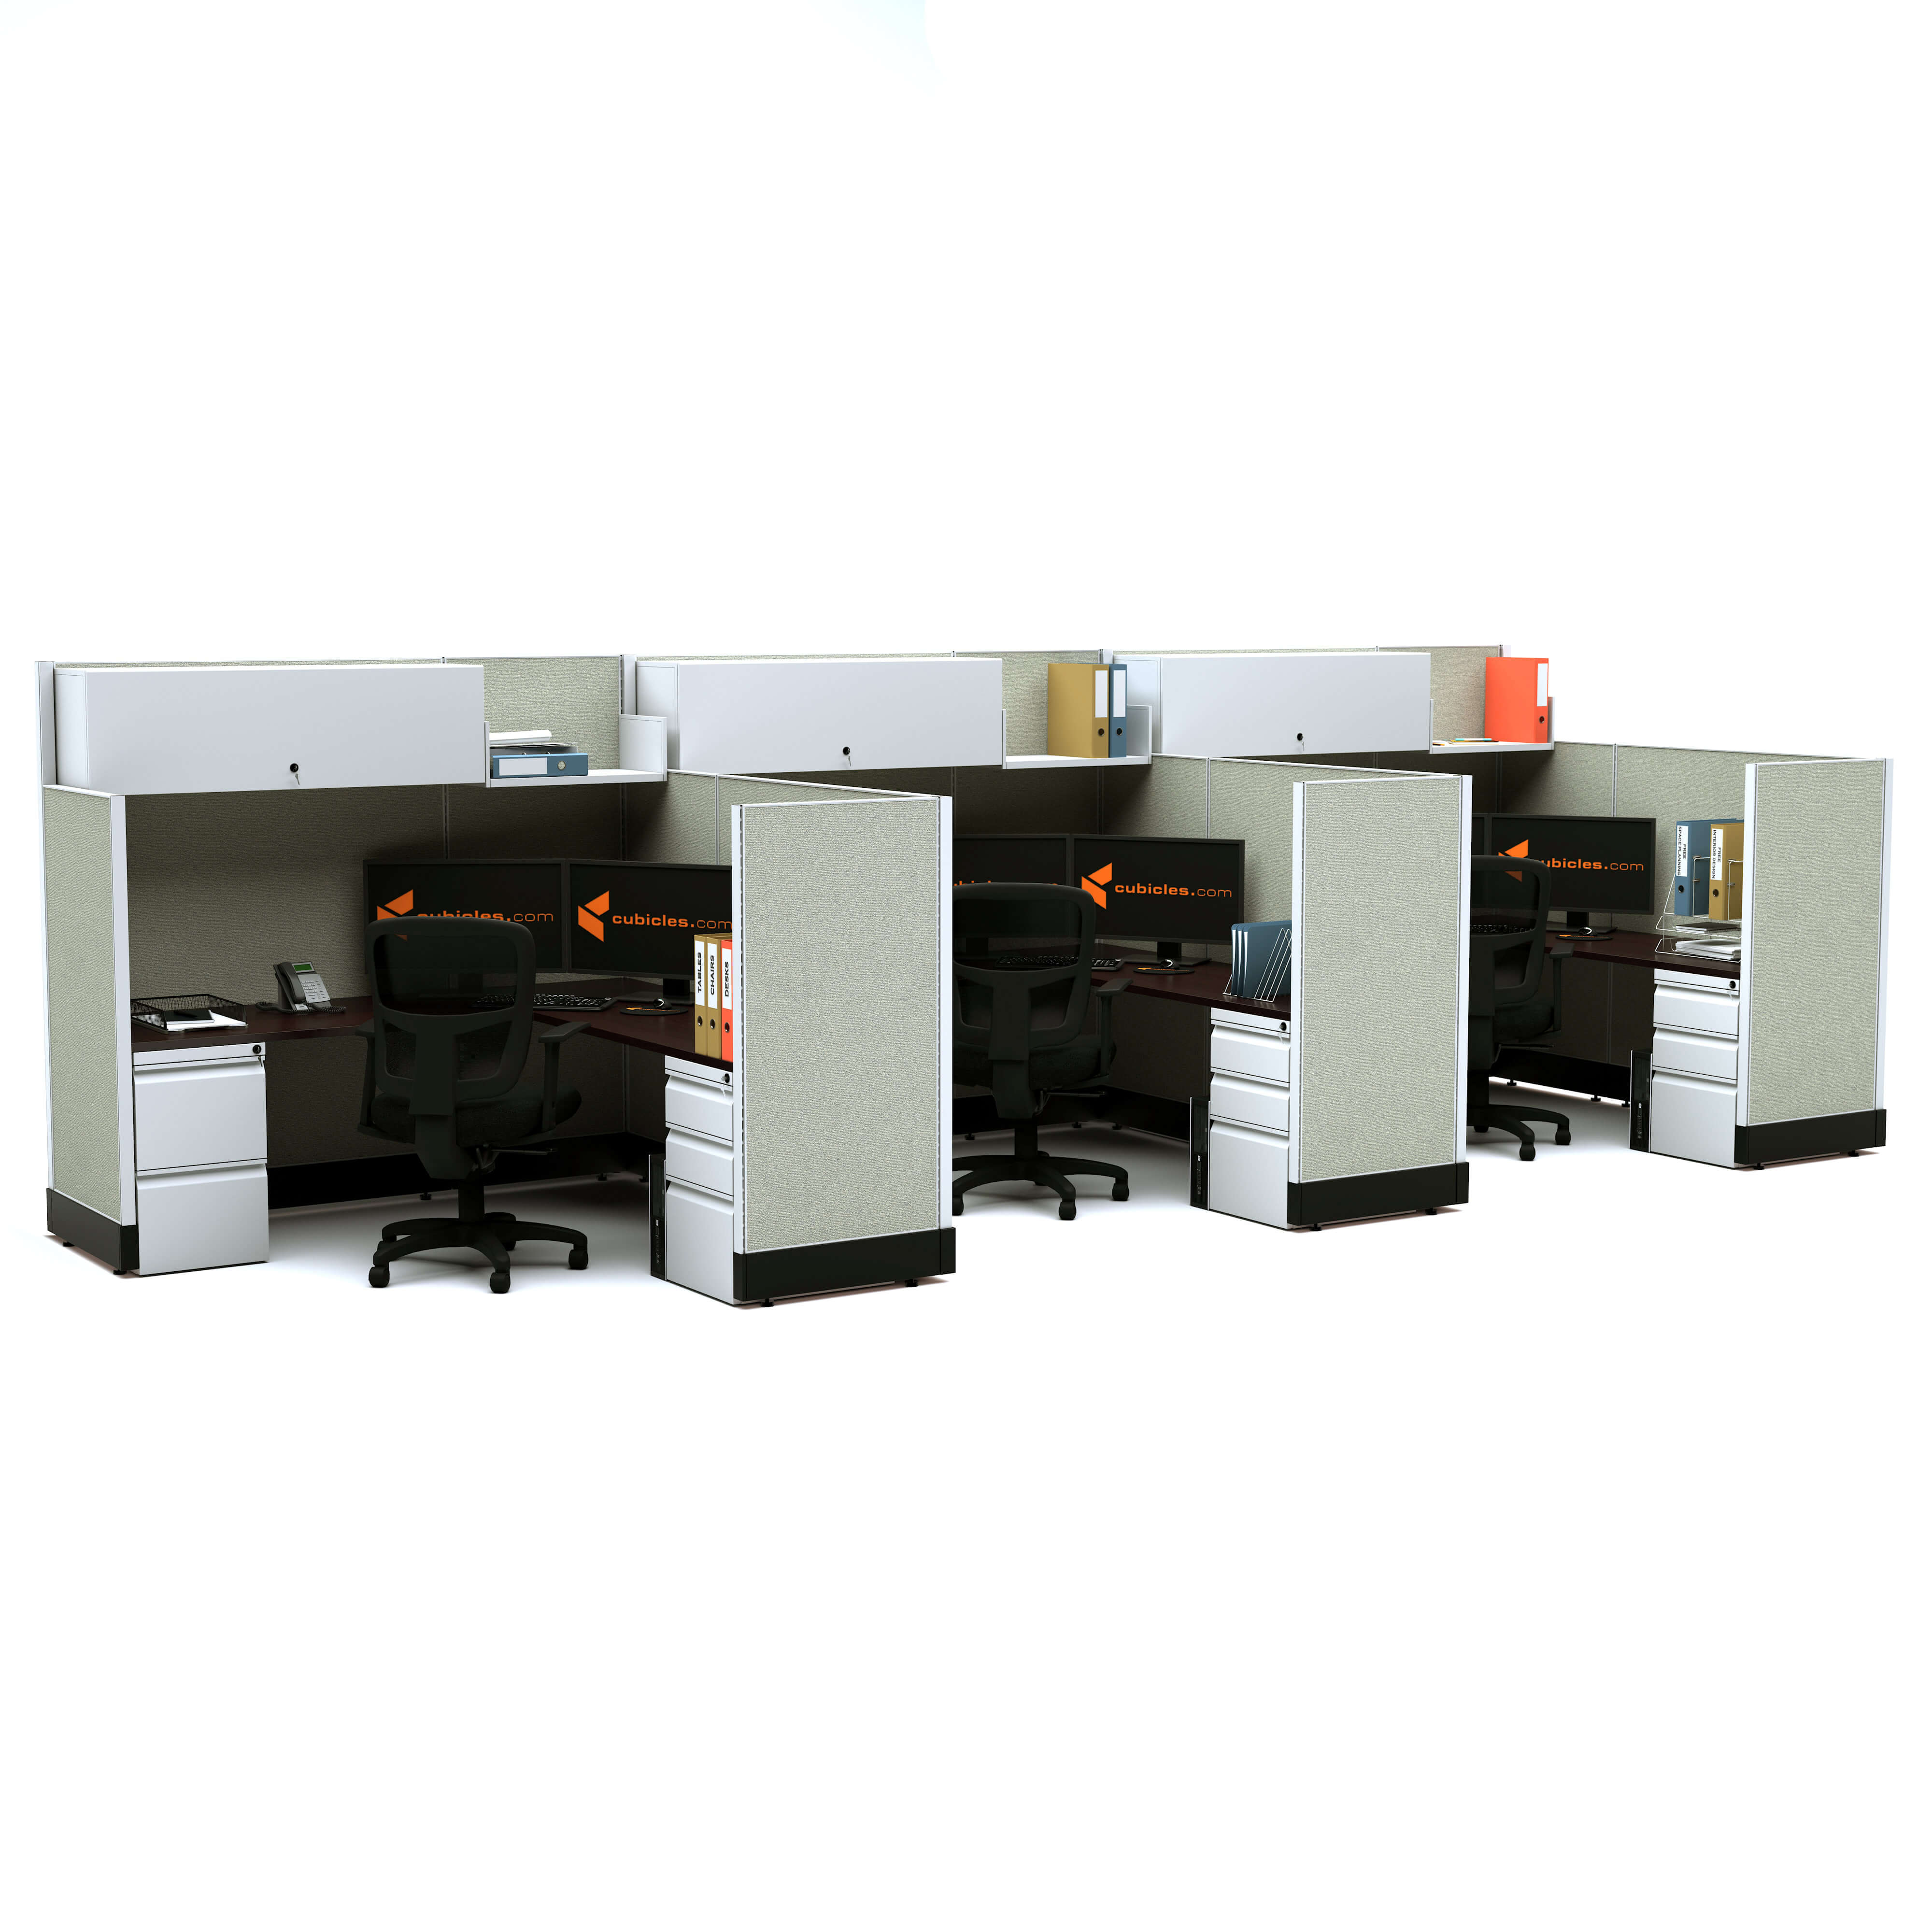 modular-office-furniture-modern-office-furniture-53-67-3pack-inline-unpowered.jpg